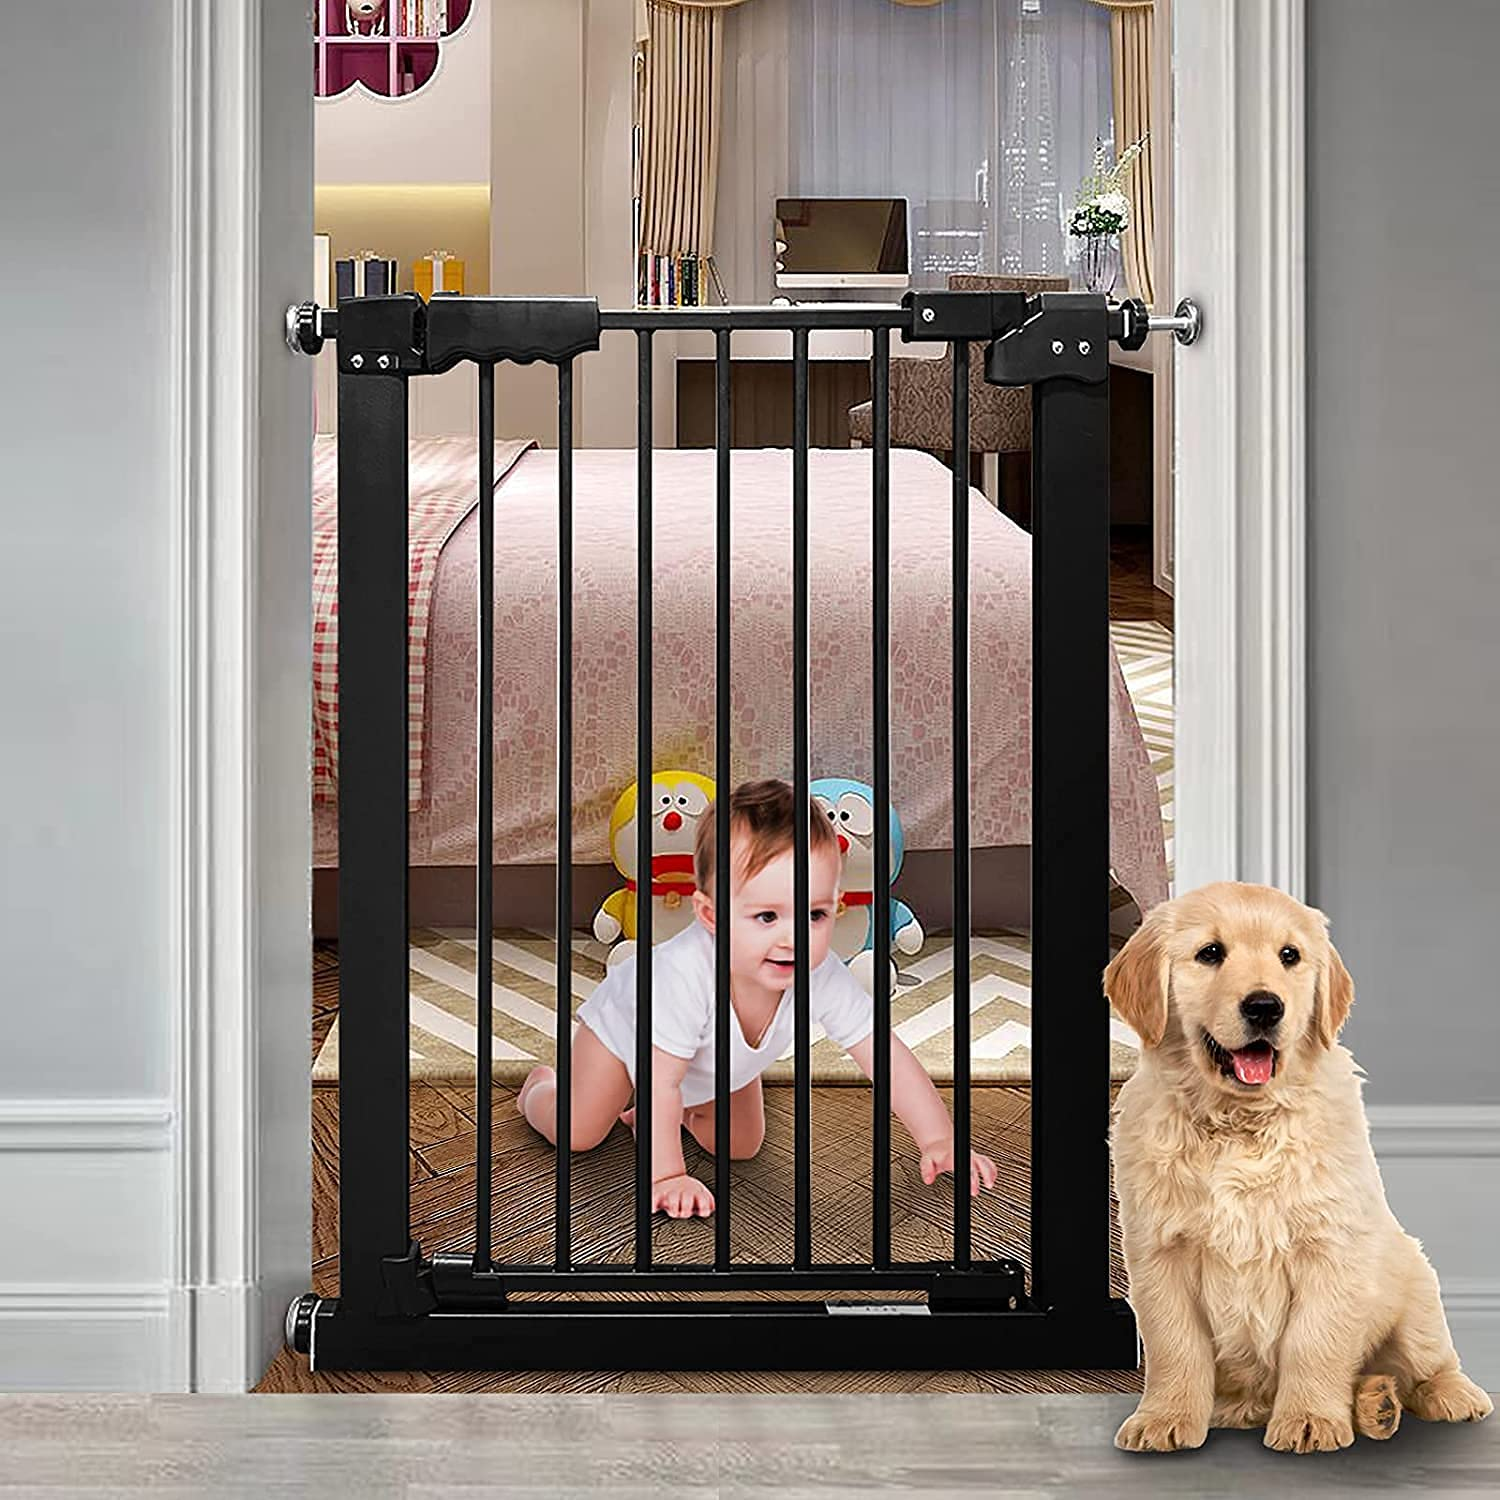 COSEND Narrow Baby Gate 24 Inch Small Black Tension Indoor Safety Gates Auto Close Walk Through Metal Narrow Dog Gate for The House Doorways Stairs (24.02